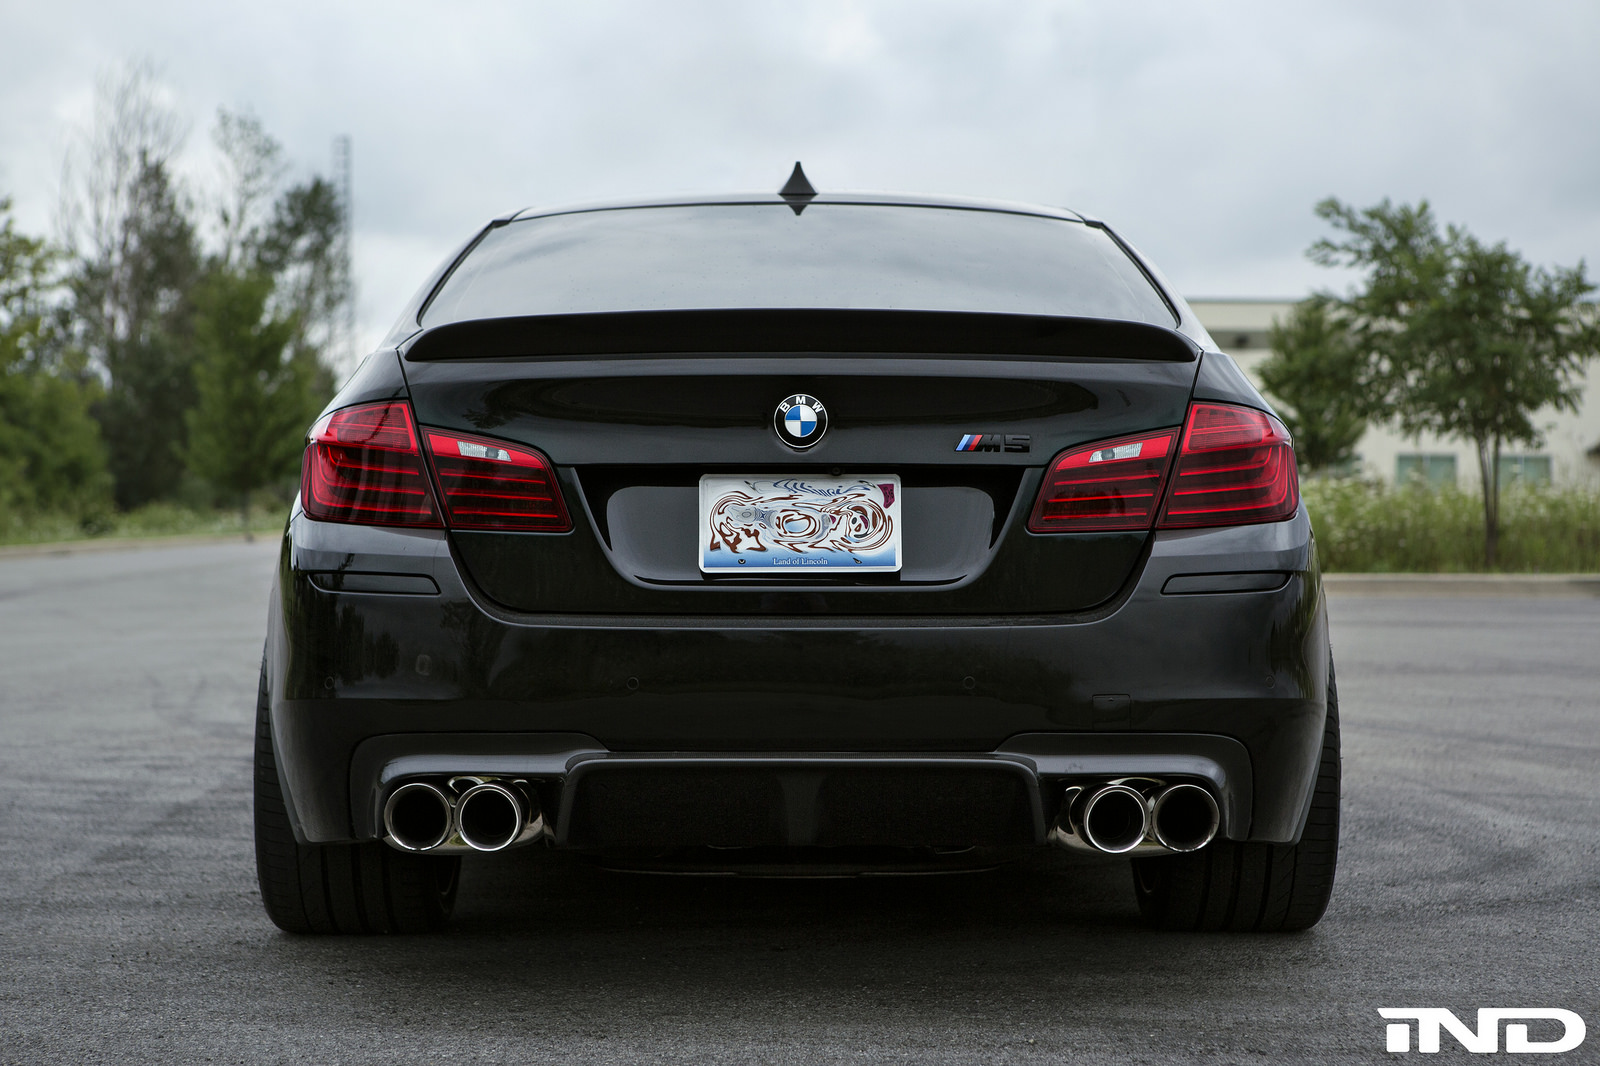 Black Sapphire Metallic Bmw M5 Cleanly Modded By Ind Distribution Bmwblog